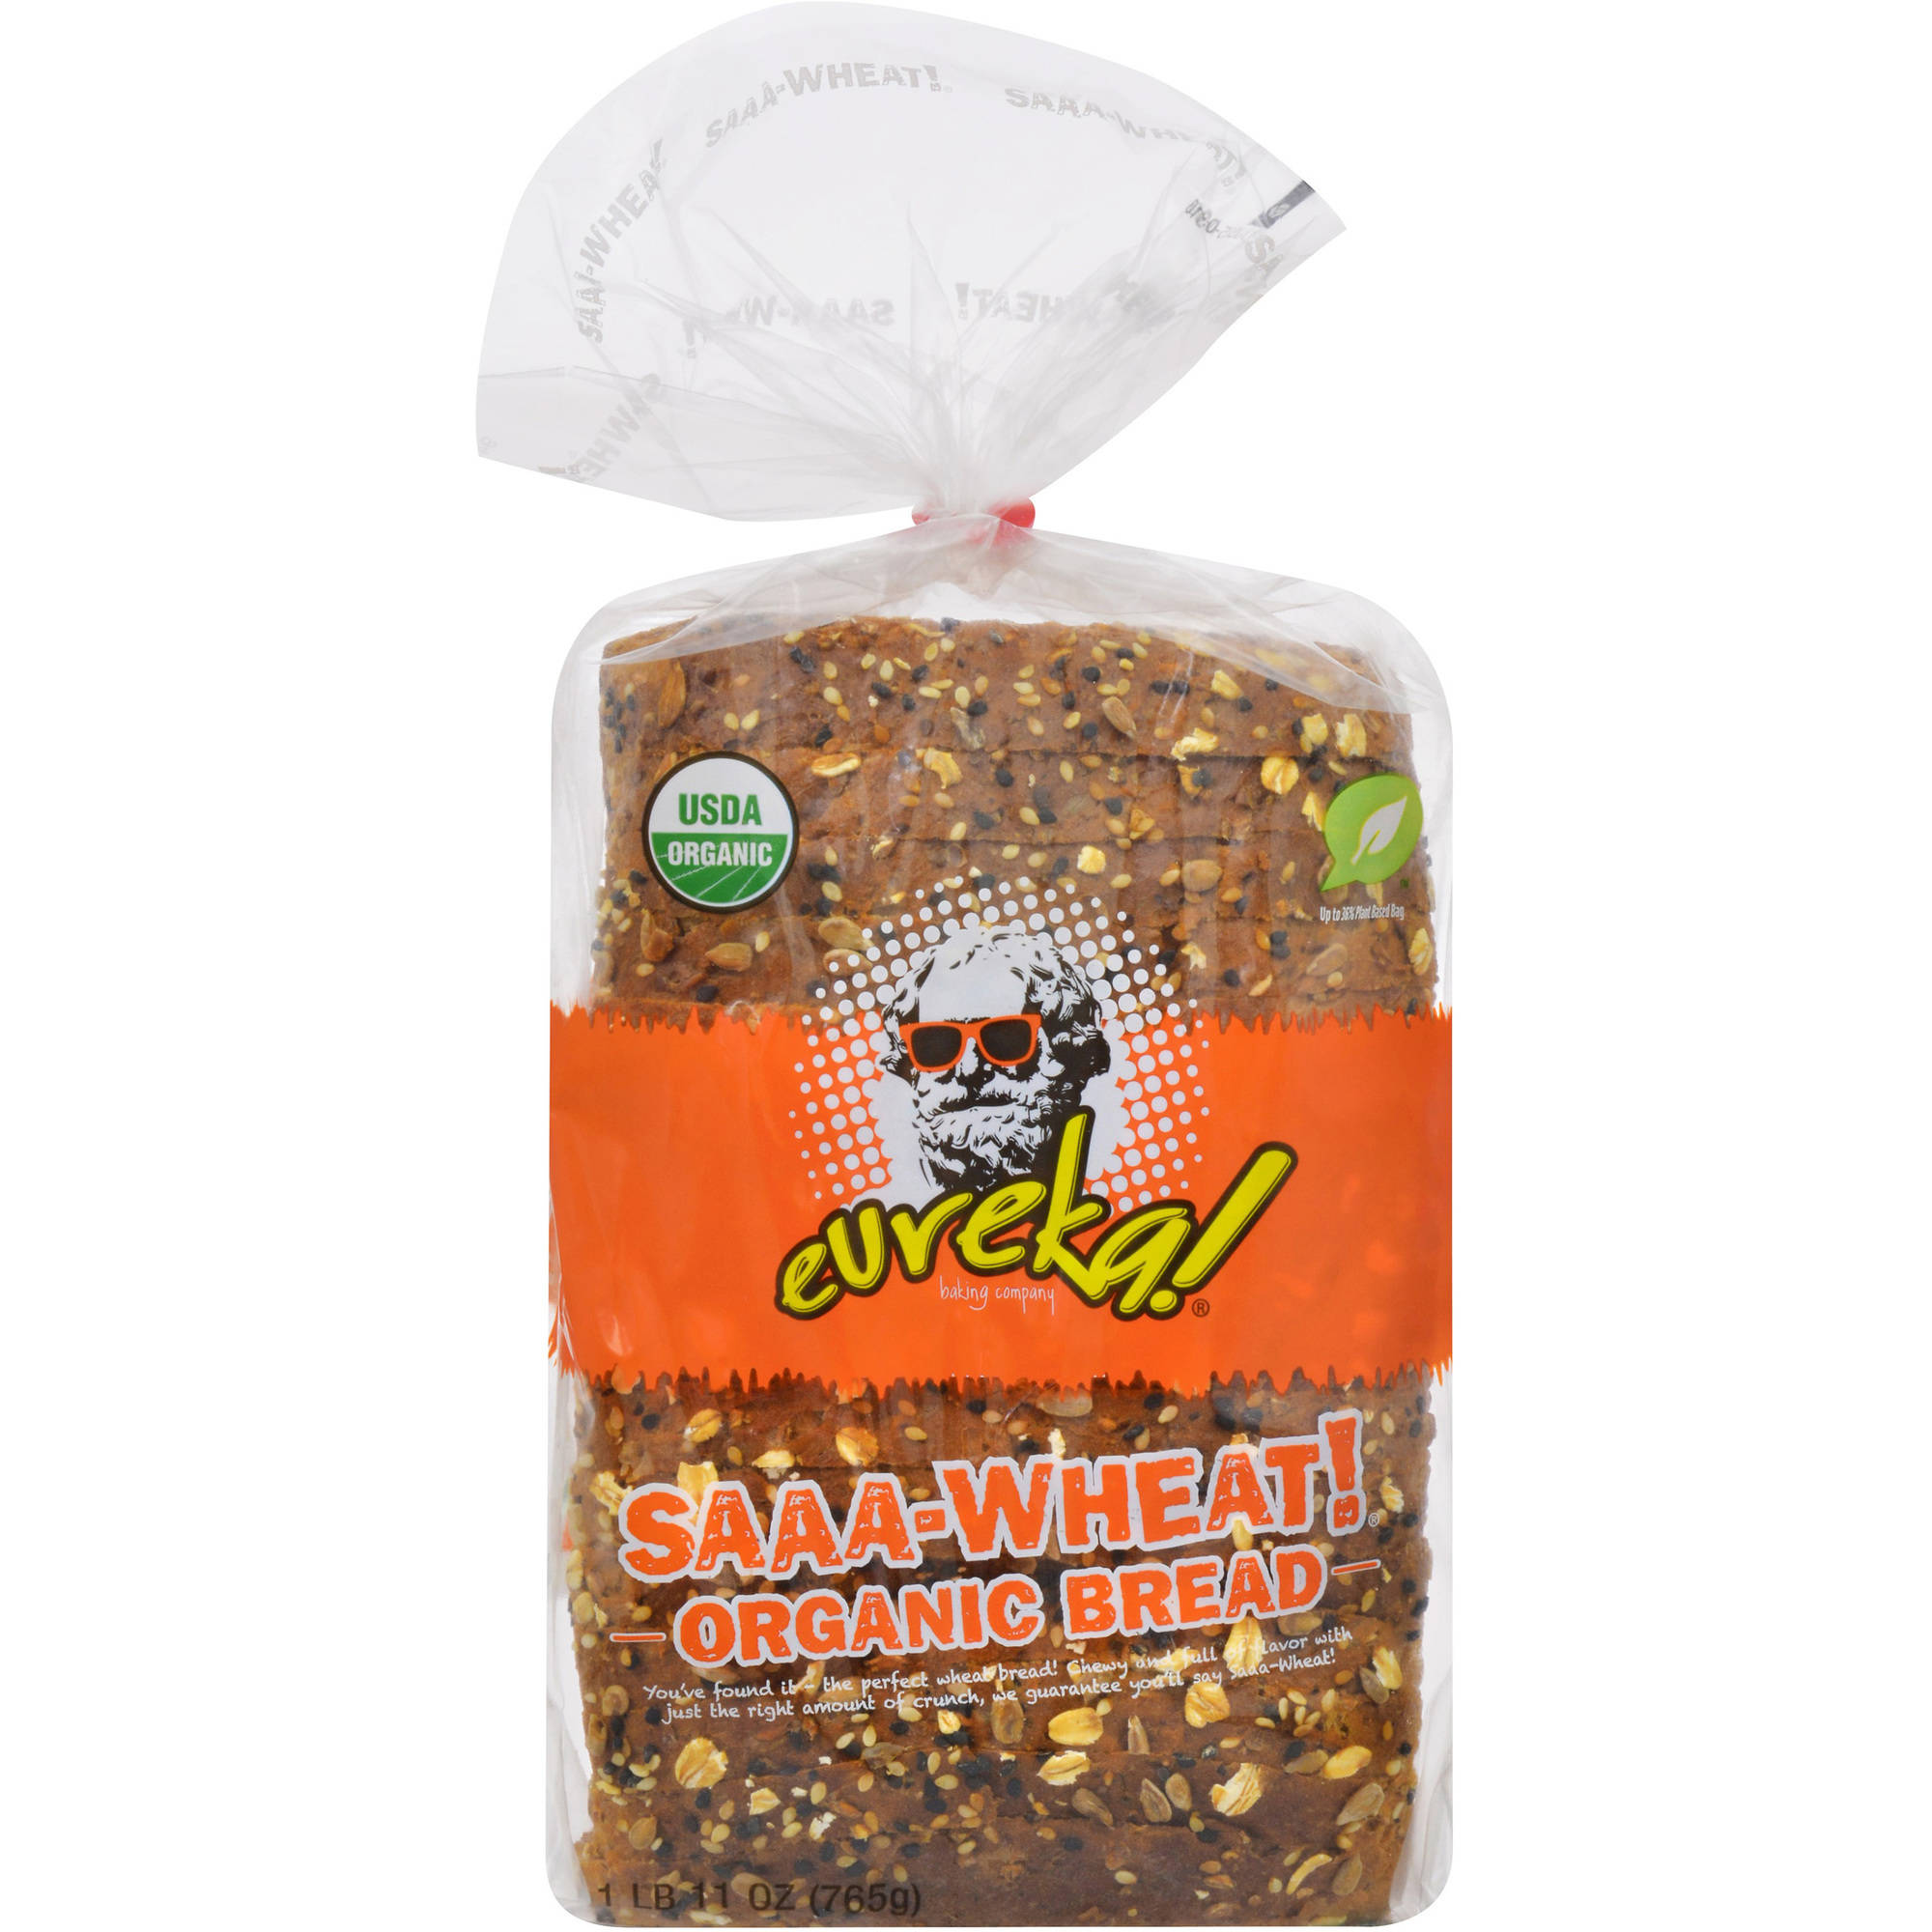 eureka! Saaa-Wheat! Bread, 27 oz